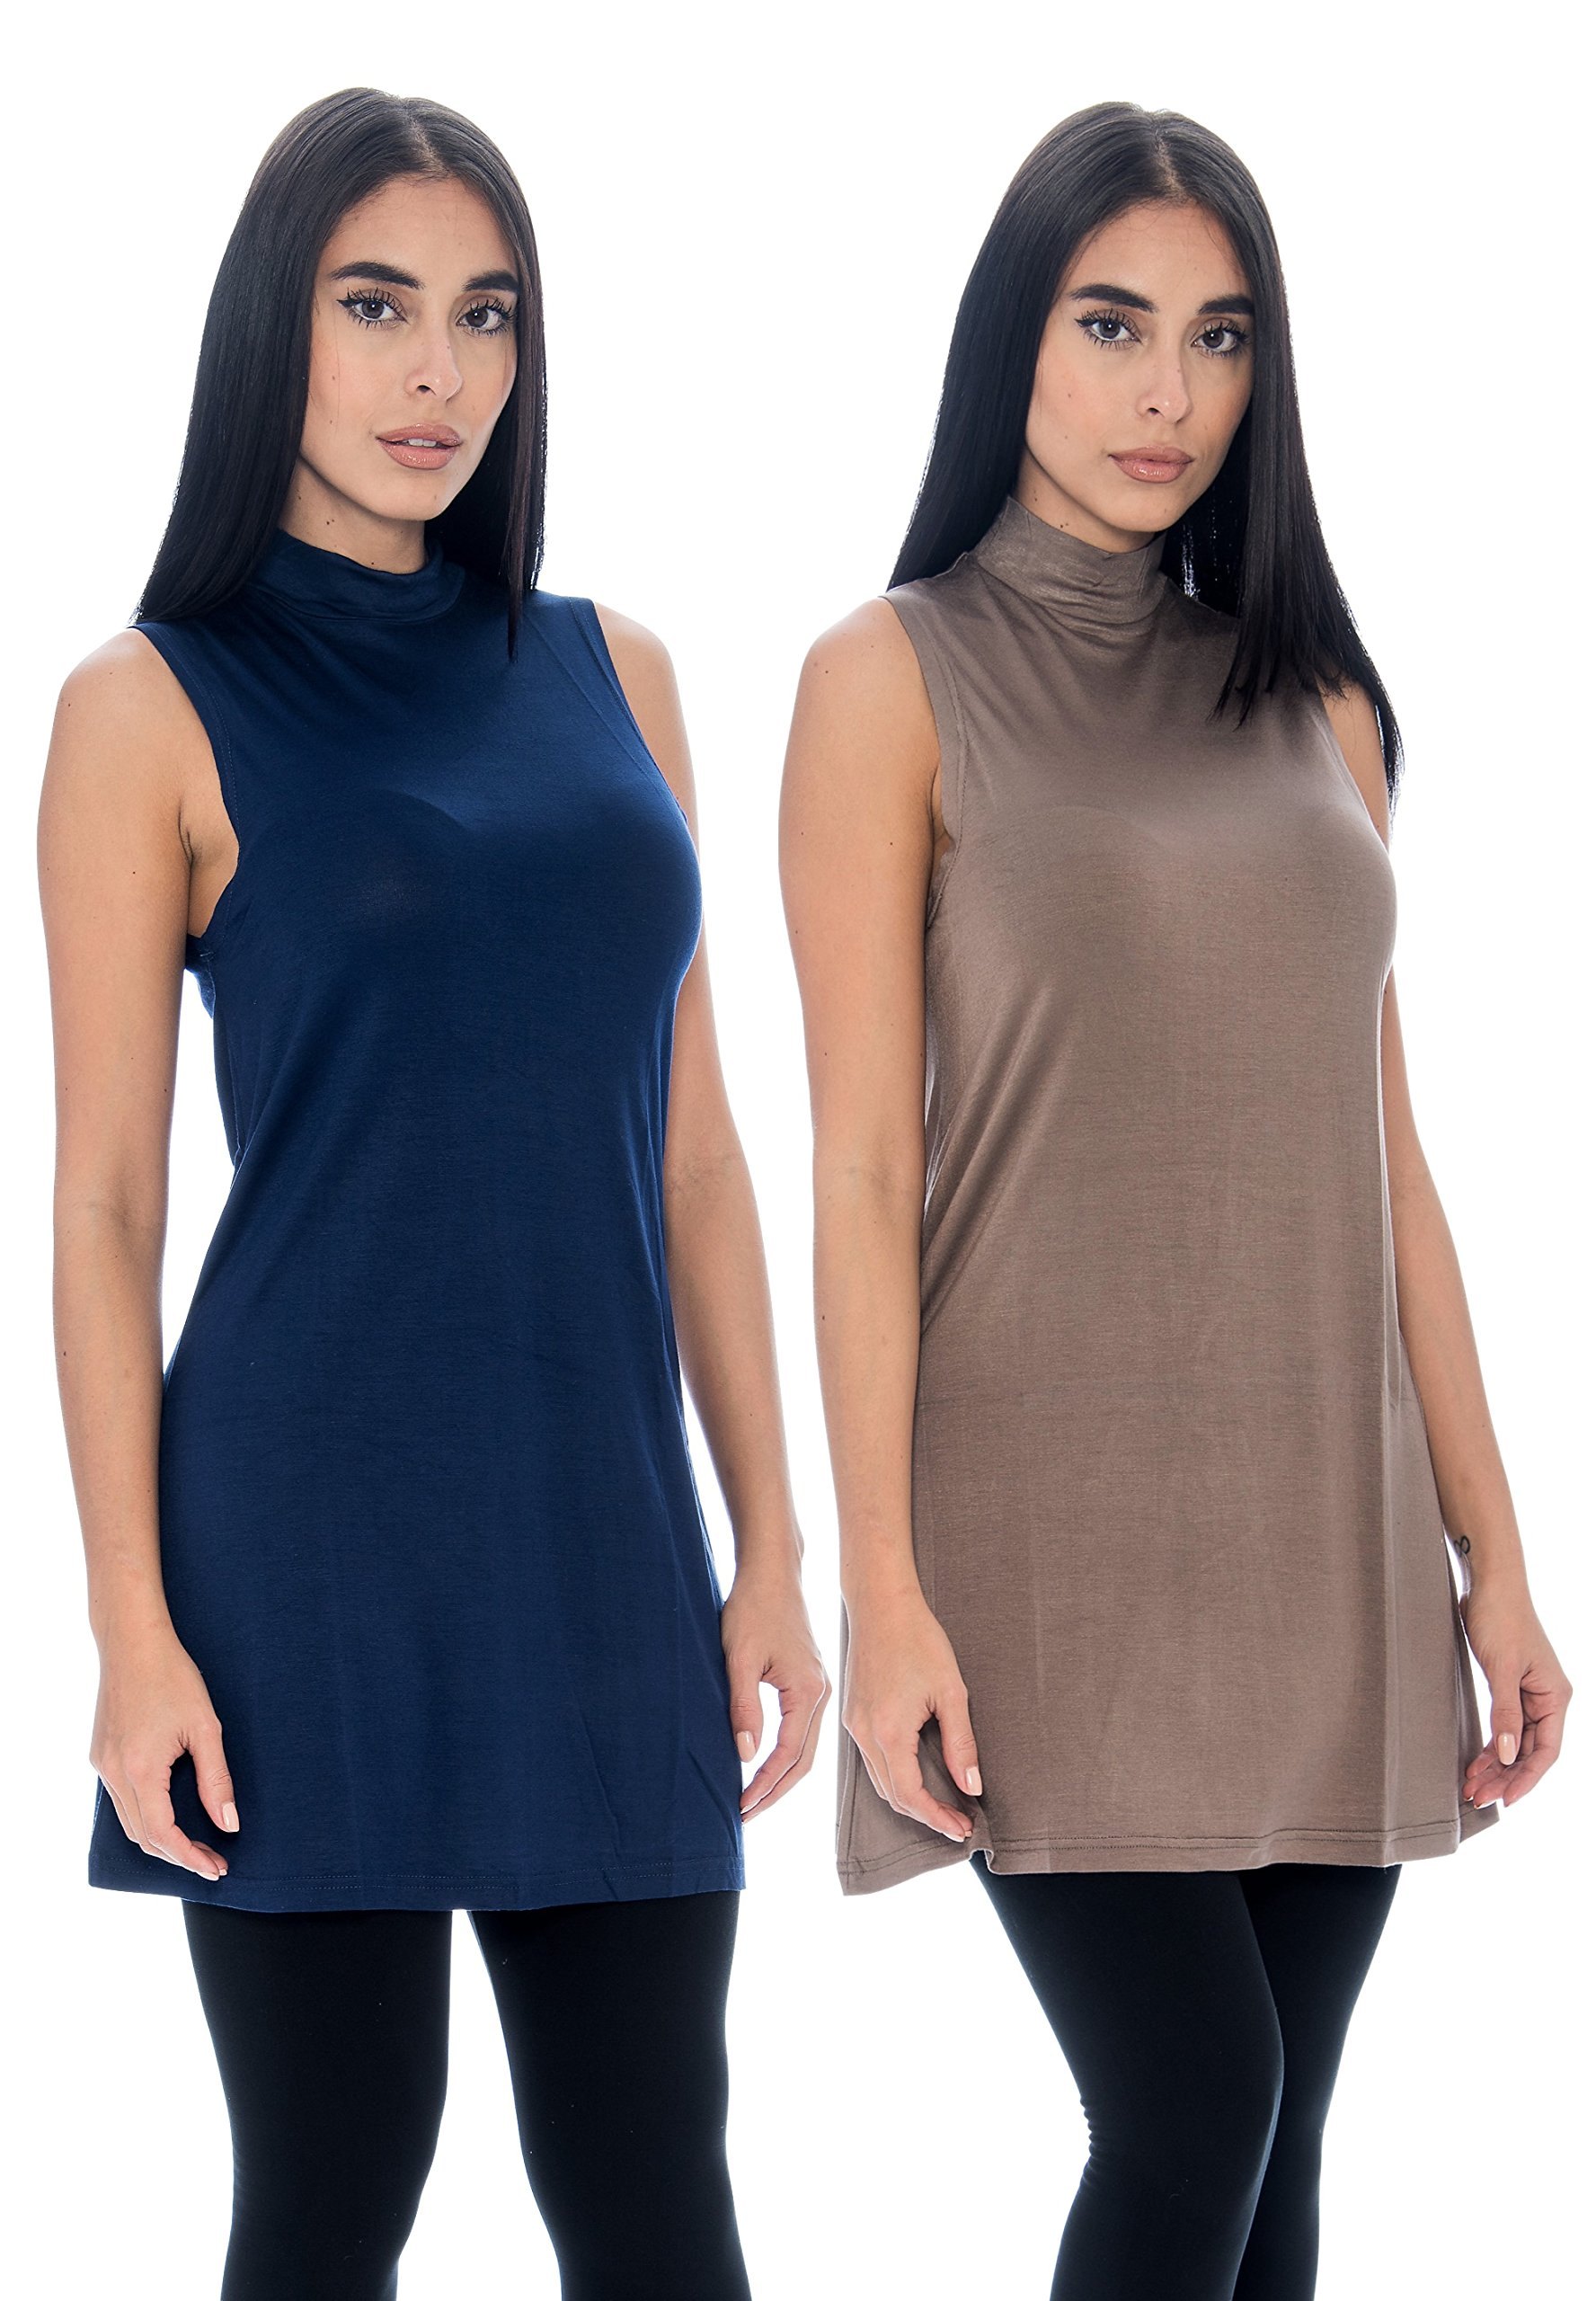 Unique Styles Seamless Womens Long Tank Top Sleeveless Mock Turtle Neck Layering Top 4 Pk (Large, 2-PK: Navy, Taupe)